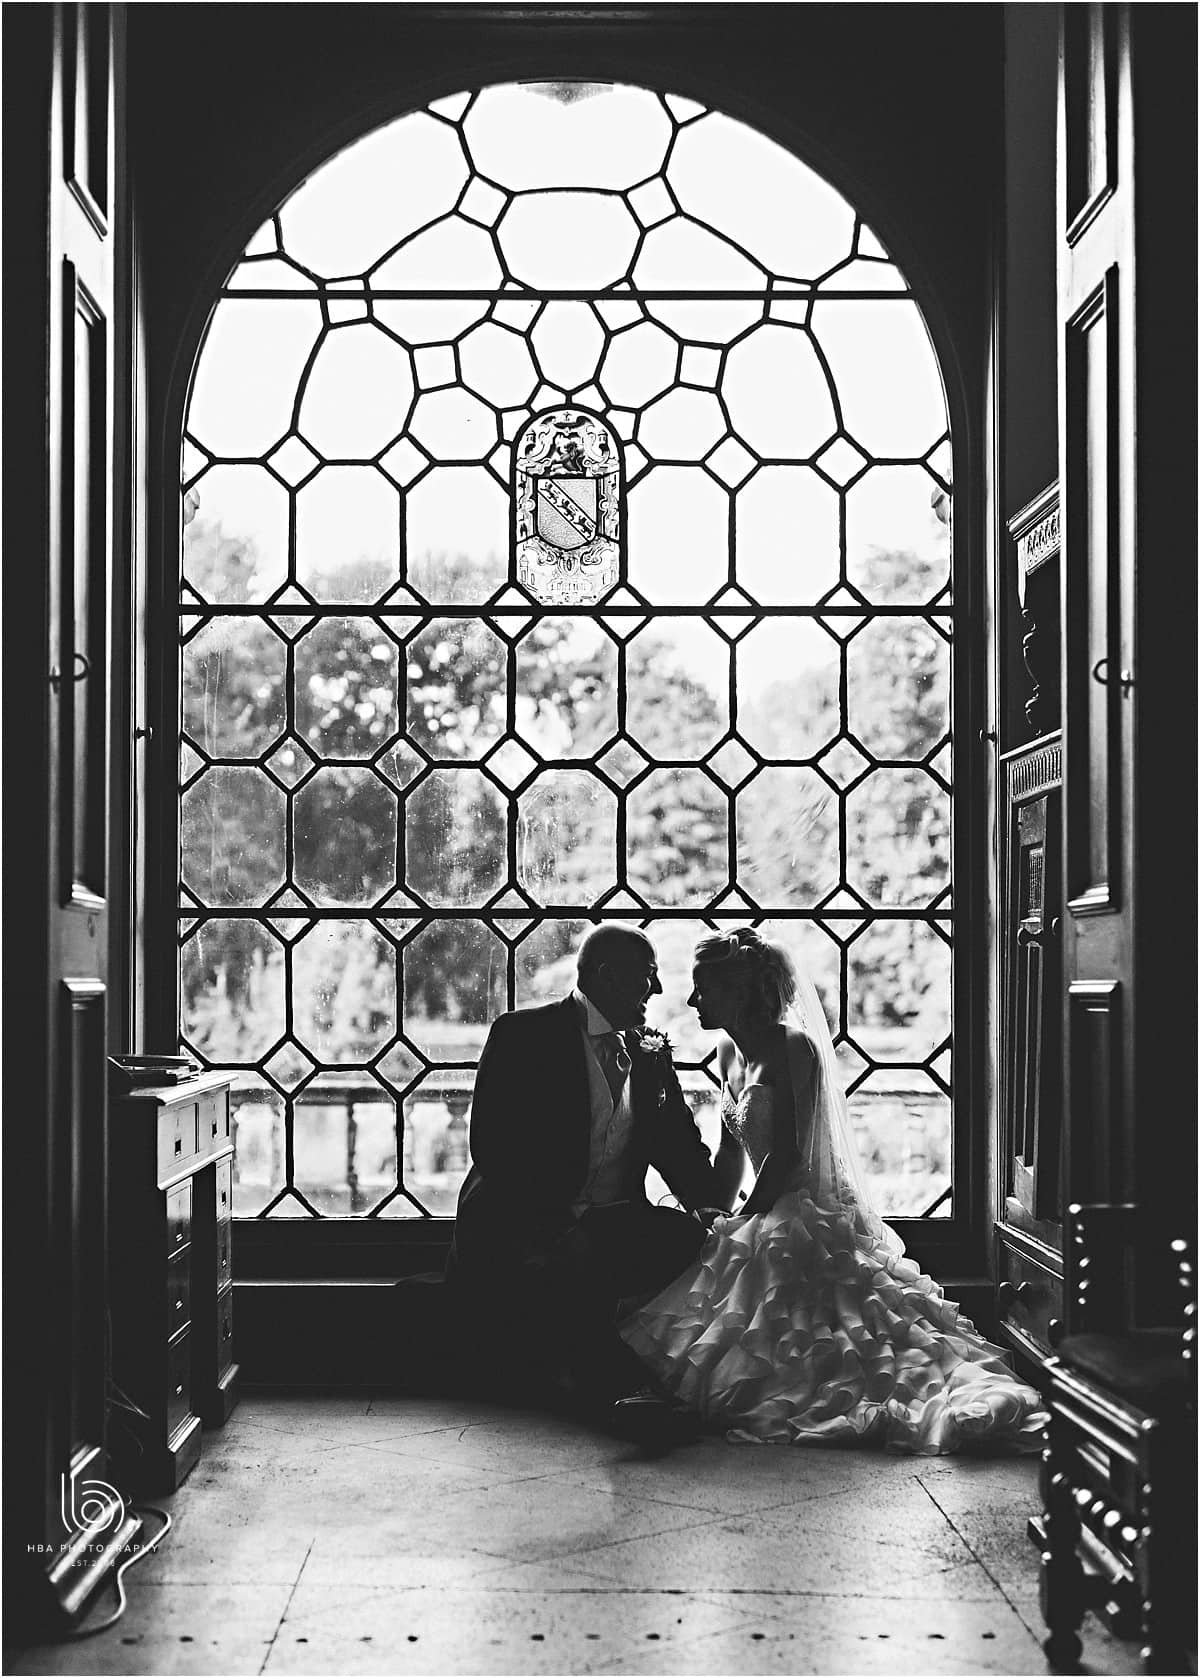 the birde and groom in the stunning leaded window at Thrumpton Hall